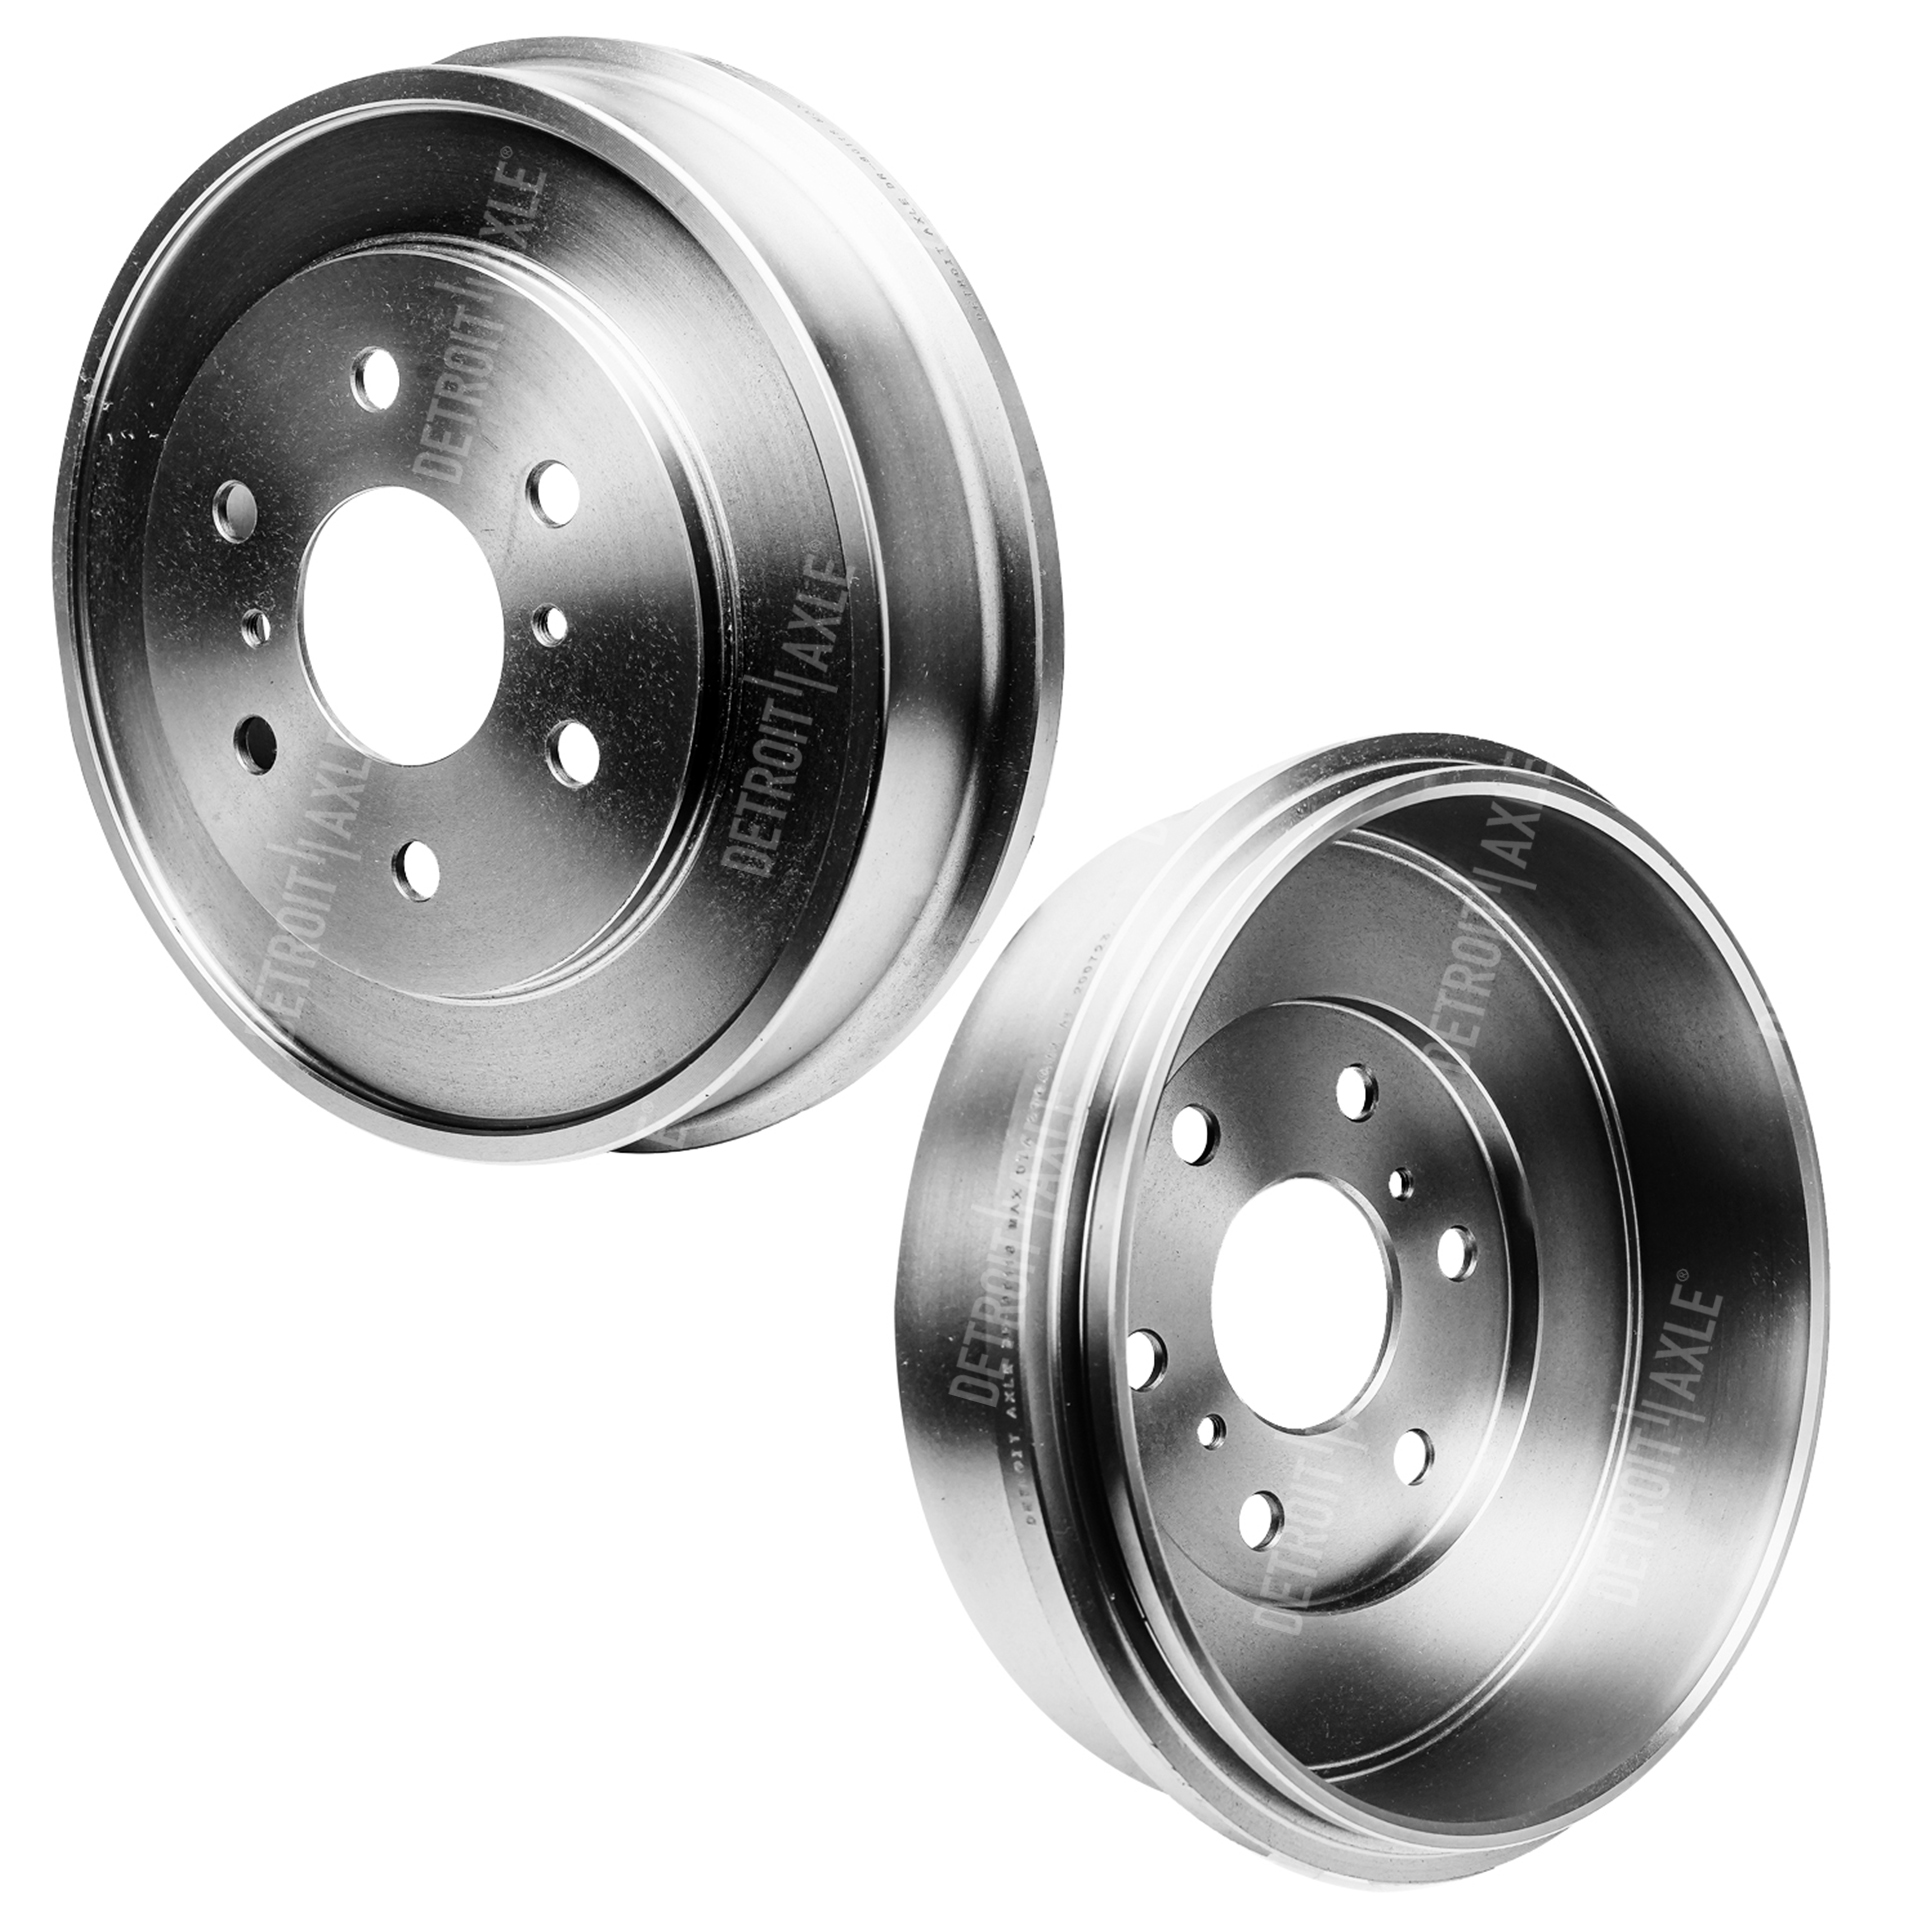 Pair (2) Rear Drum Brake Rotors for Chevrolet Silverado 1500 GMC Sierra 1500